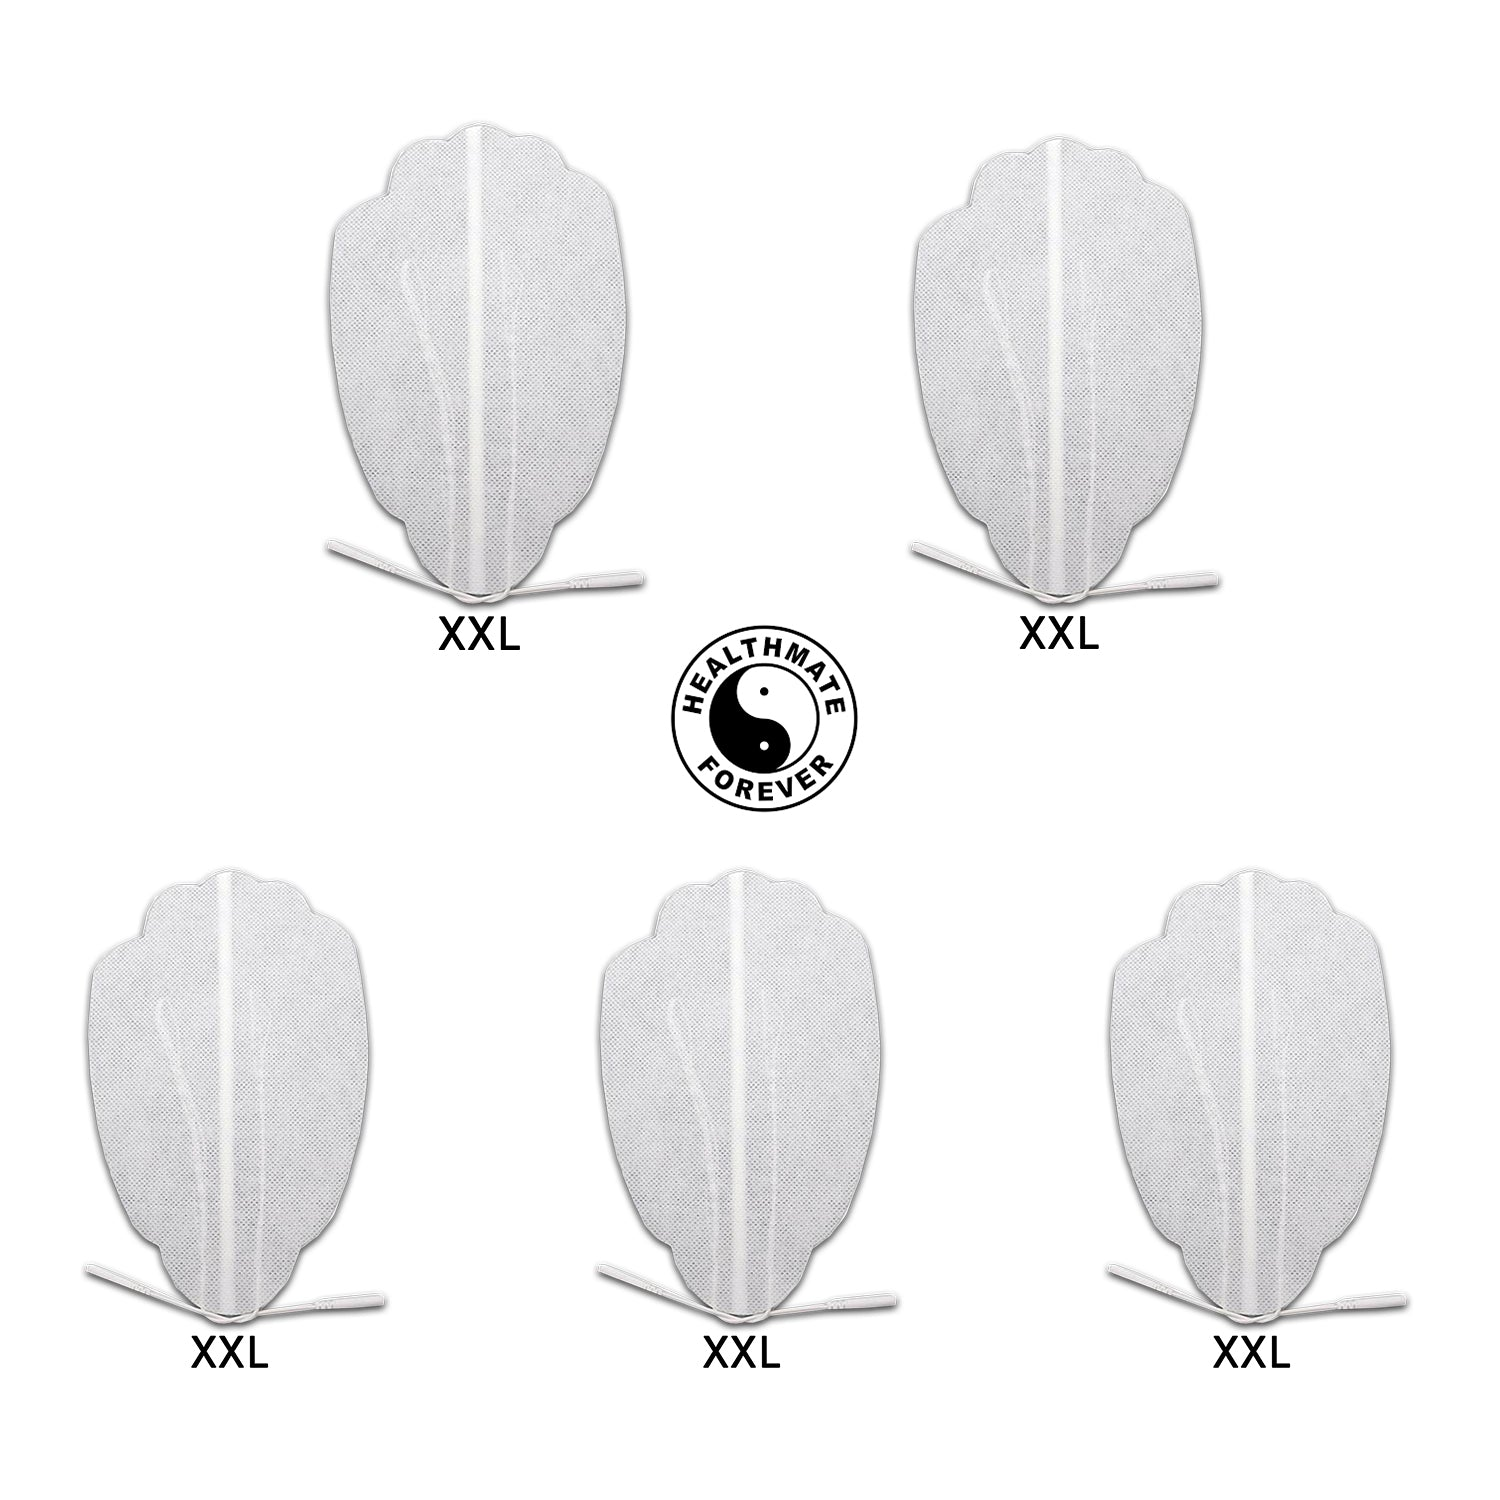 5 Pcs White XXL Hand-Shaped Pin inserted electrode patches pads for pain relief TENS & Muscle Stimulator - HealthmateForever